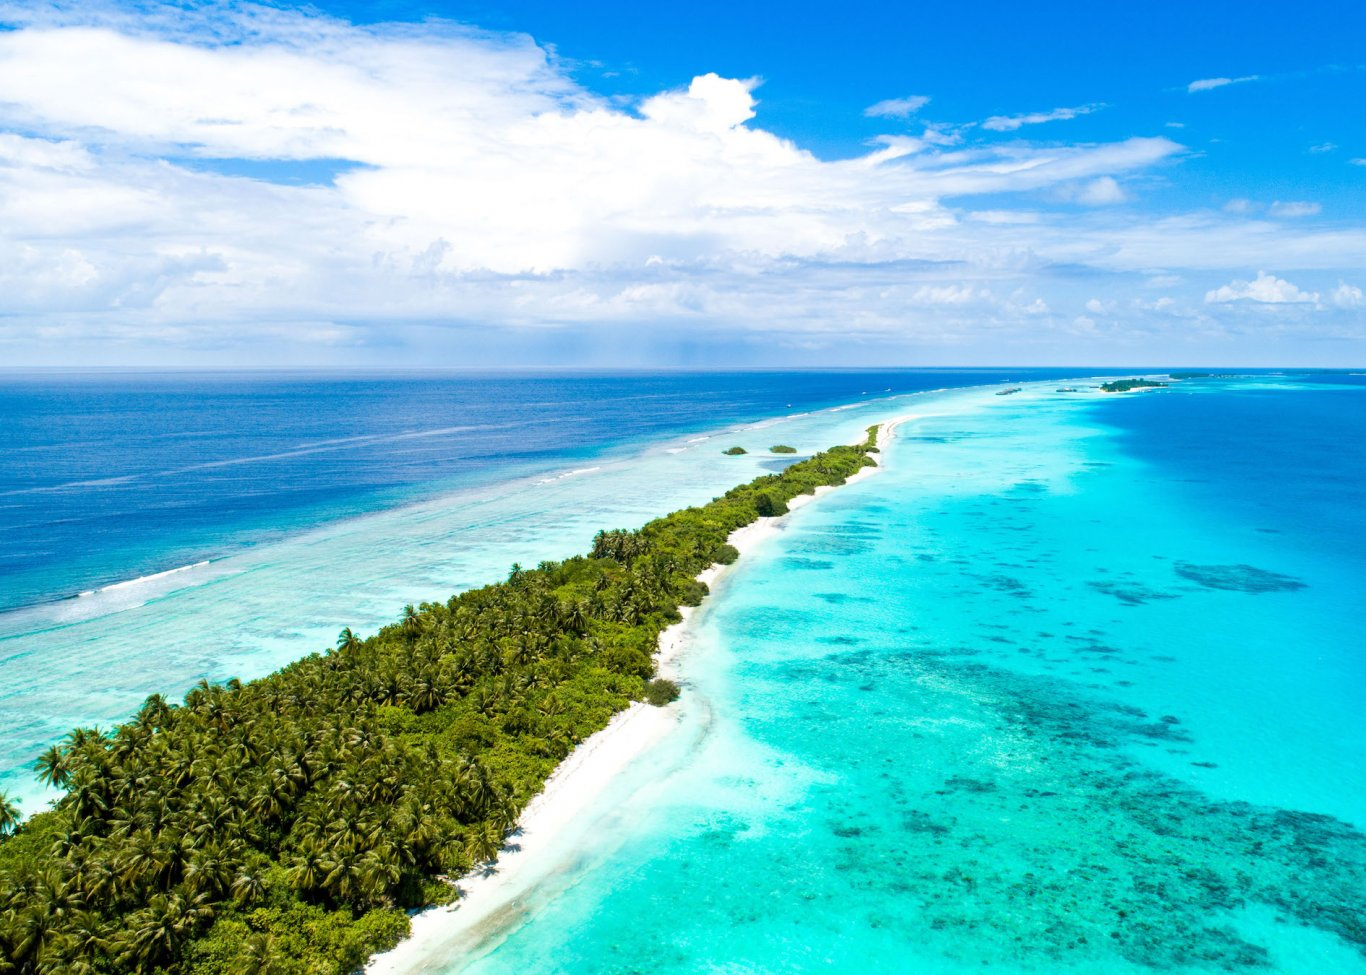 A picturesque photo of a long stretch of a sandbank surrounded by lush greenery and bright blue turquoise water with coral reefs in view